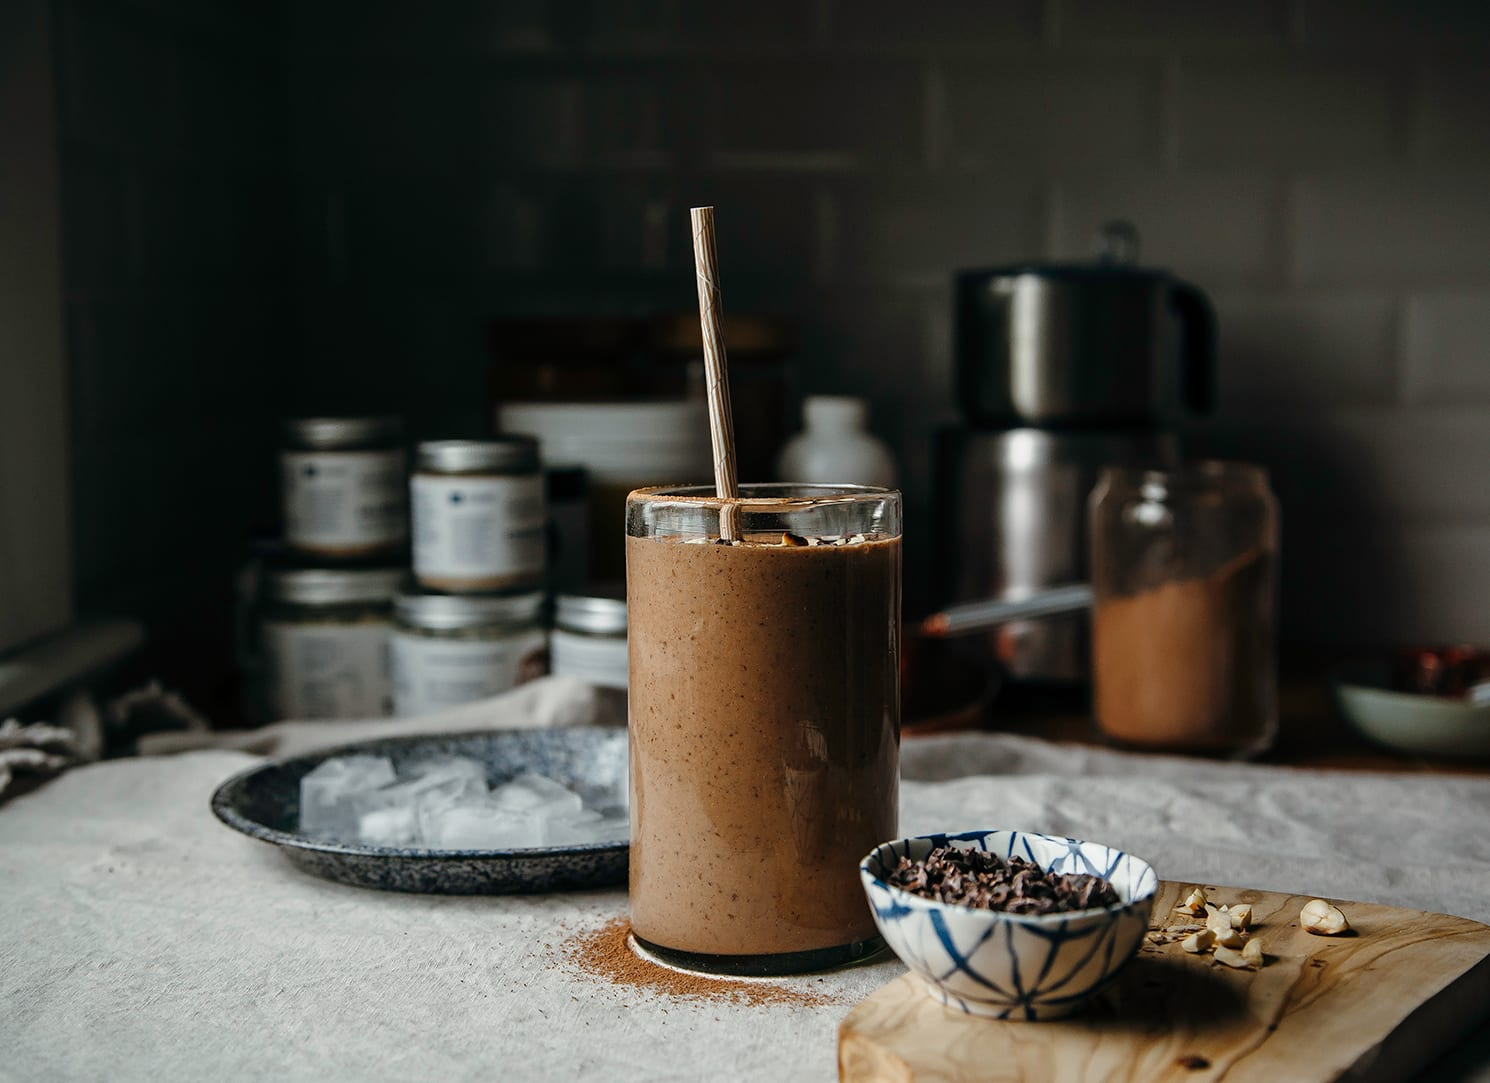 A head-on shot of a double chocolate espresso smoothie that is garnished with chopped hazelnuts and cacao nibs. The smoothie is on top of a beige tablecloth with a small bowl of cacao nibs to the side.